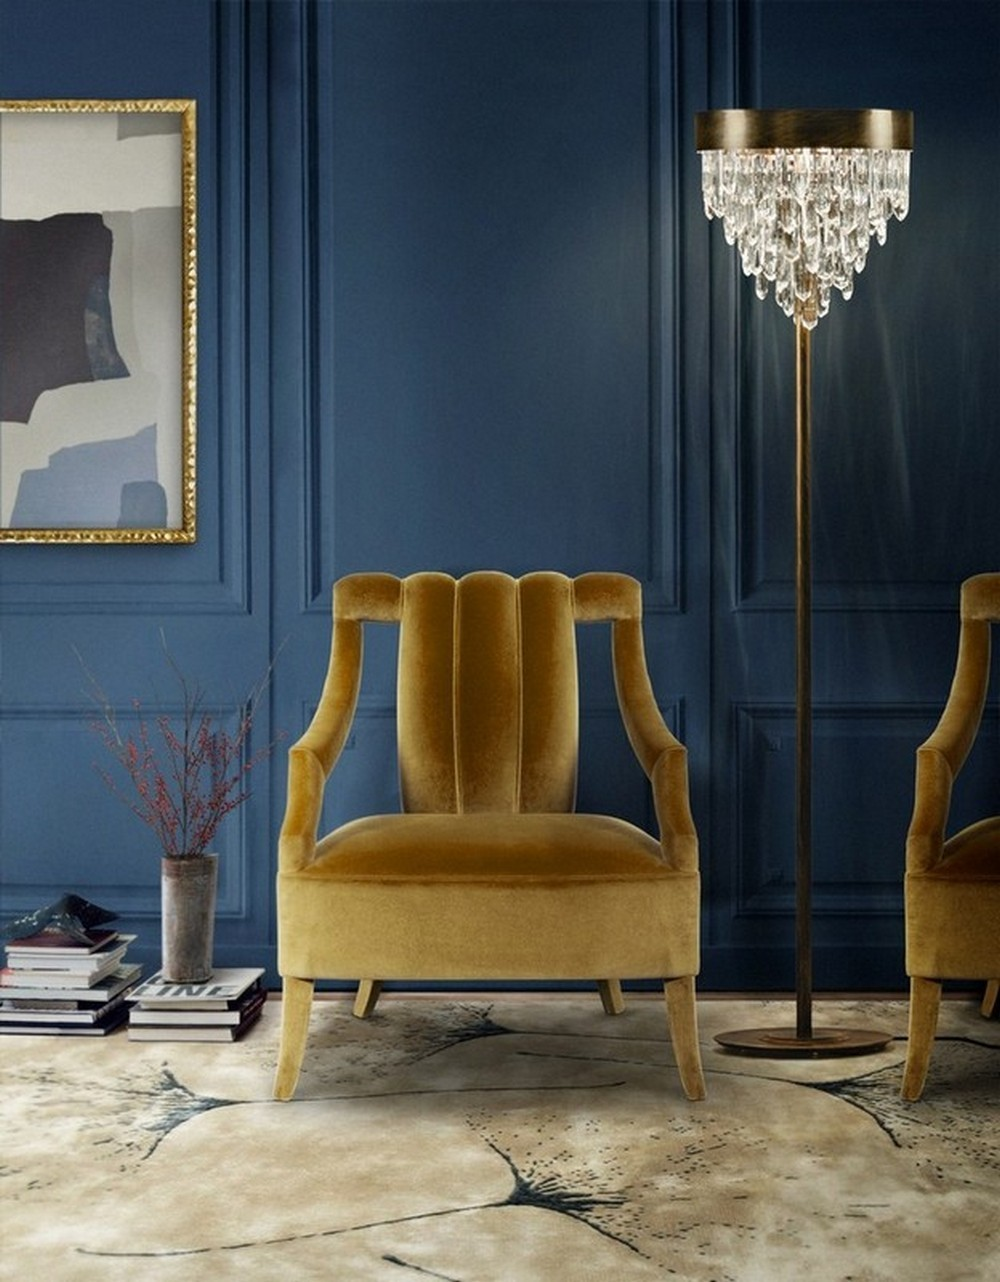 Amazing Home Decor Inspirations Featuring Pantone's Color Of The Year 2020 pantone Amazing Home Decor Inspirations Featuring Pantone's Color Of The Year 2020 Amazing Home Decor Inspirations Featuring Pantones Color Of The Year 2020 9